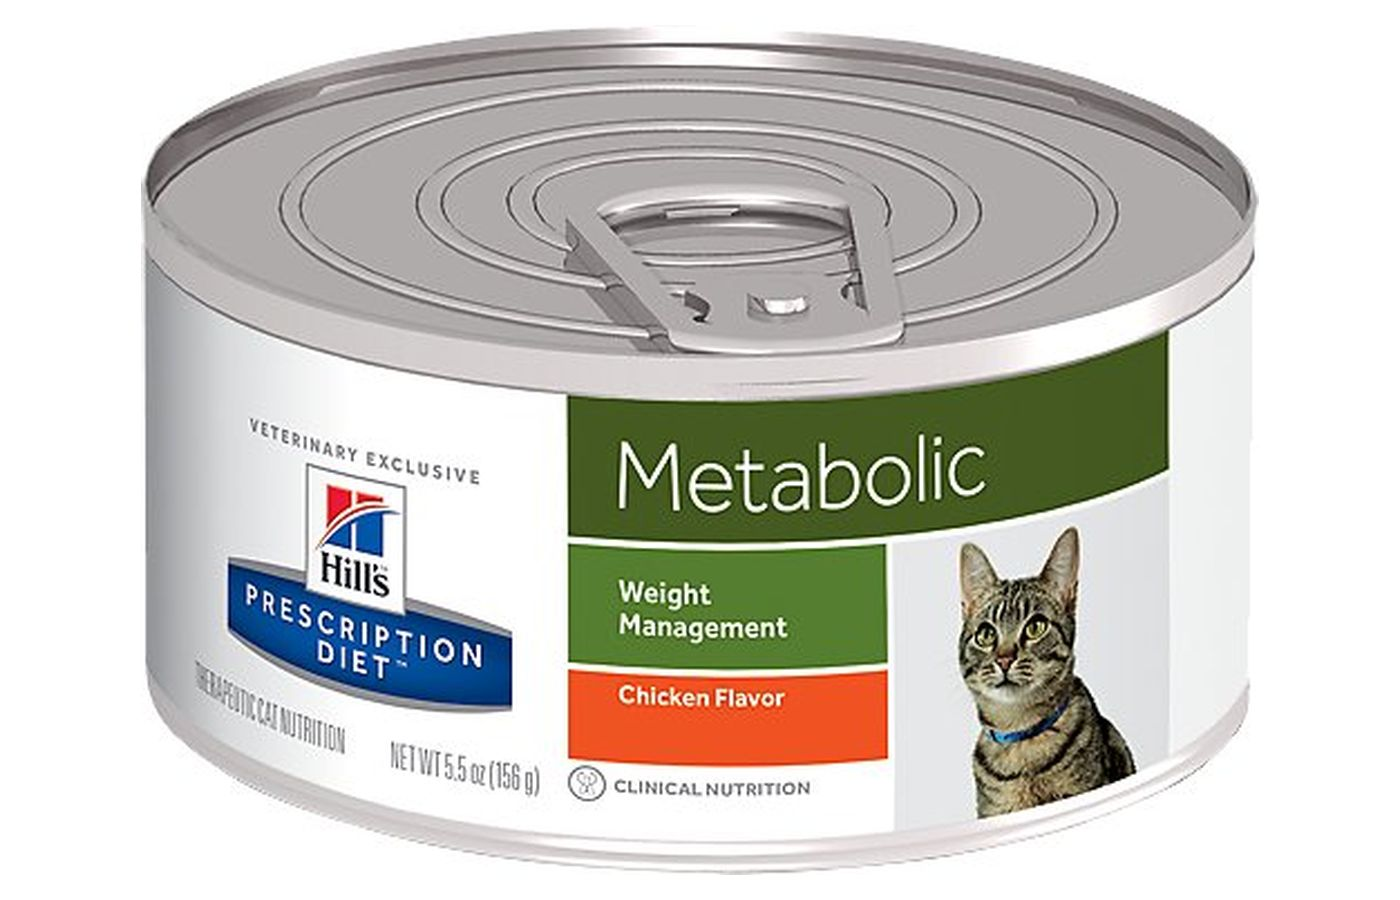 Hill's Prescription Diet Metabolic Weight Management Chicken Canned Cat Food